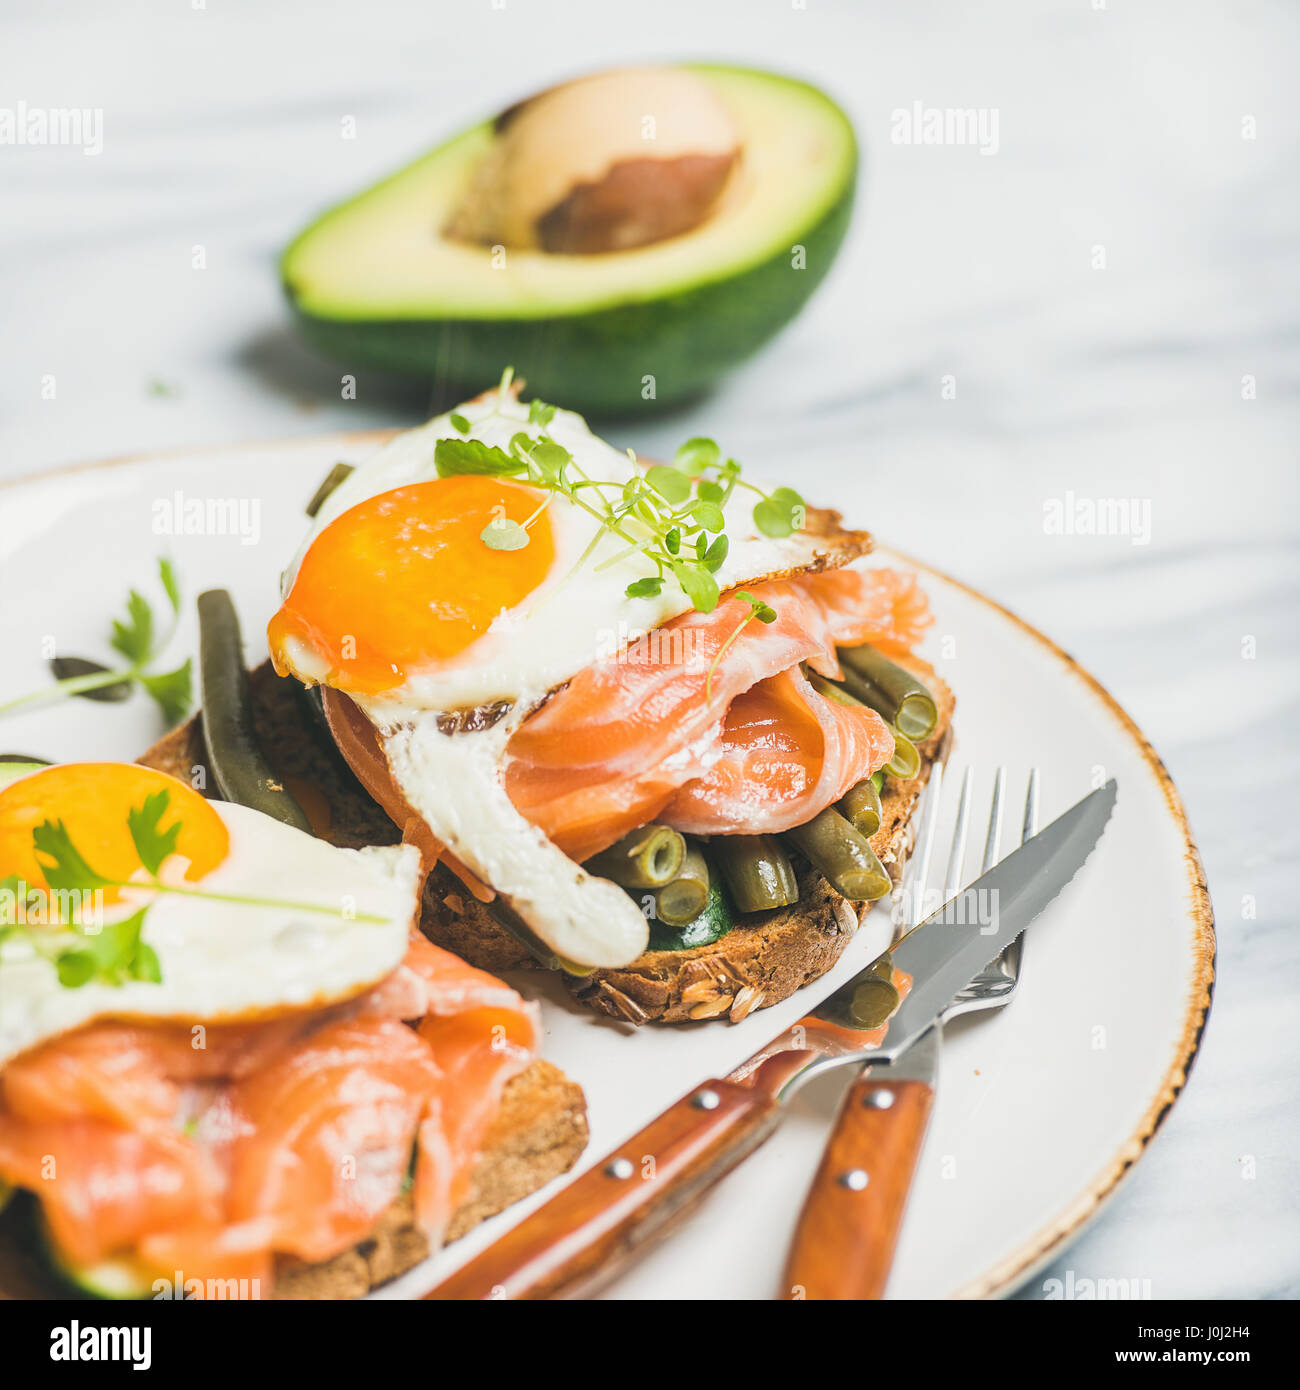 Salmon, avocado, fried egg, beans and sprouts sandwiches, square crop - Stock Image